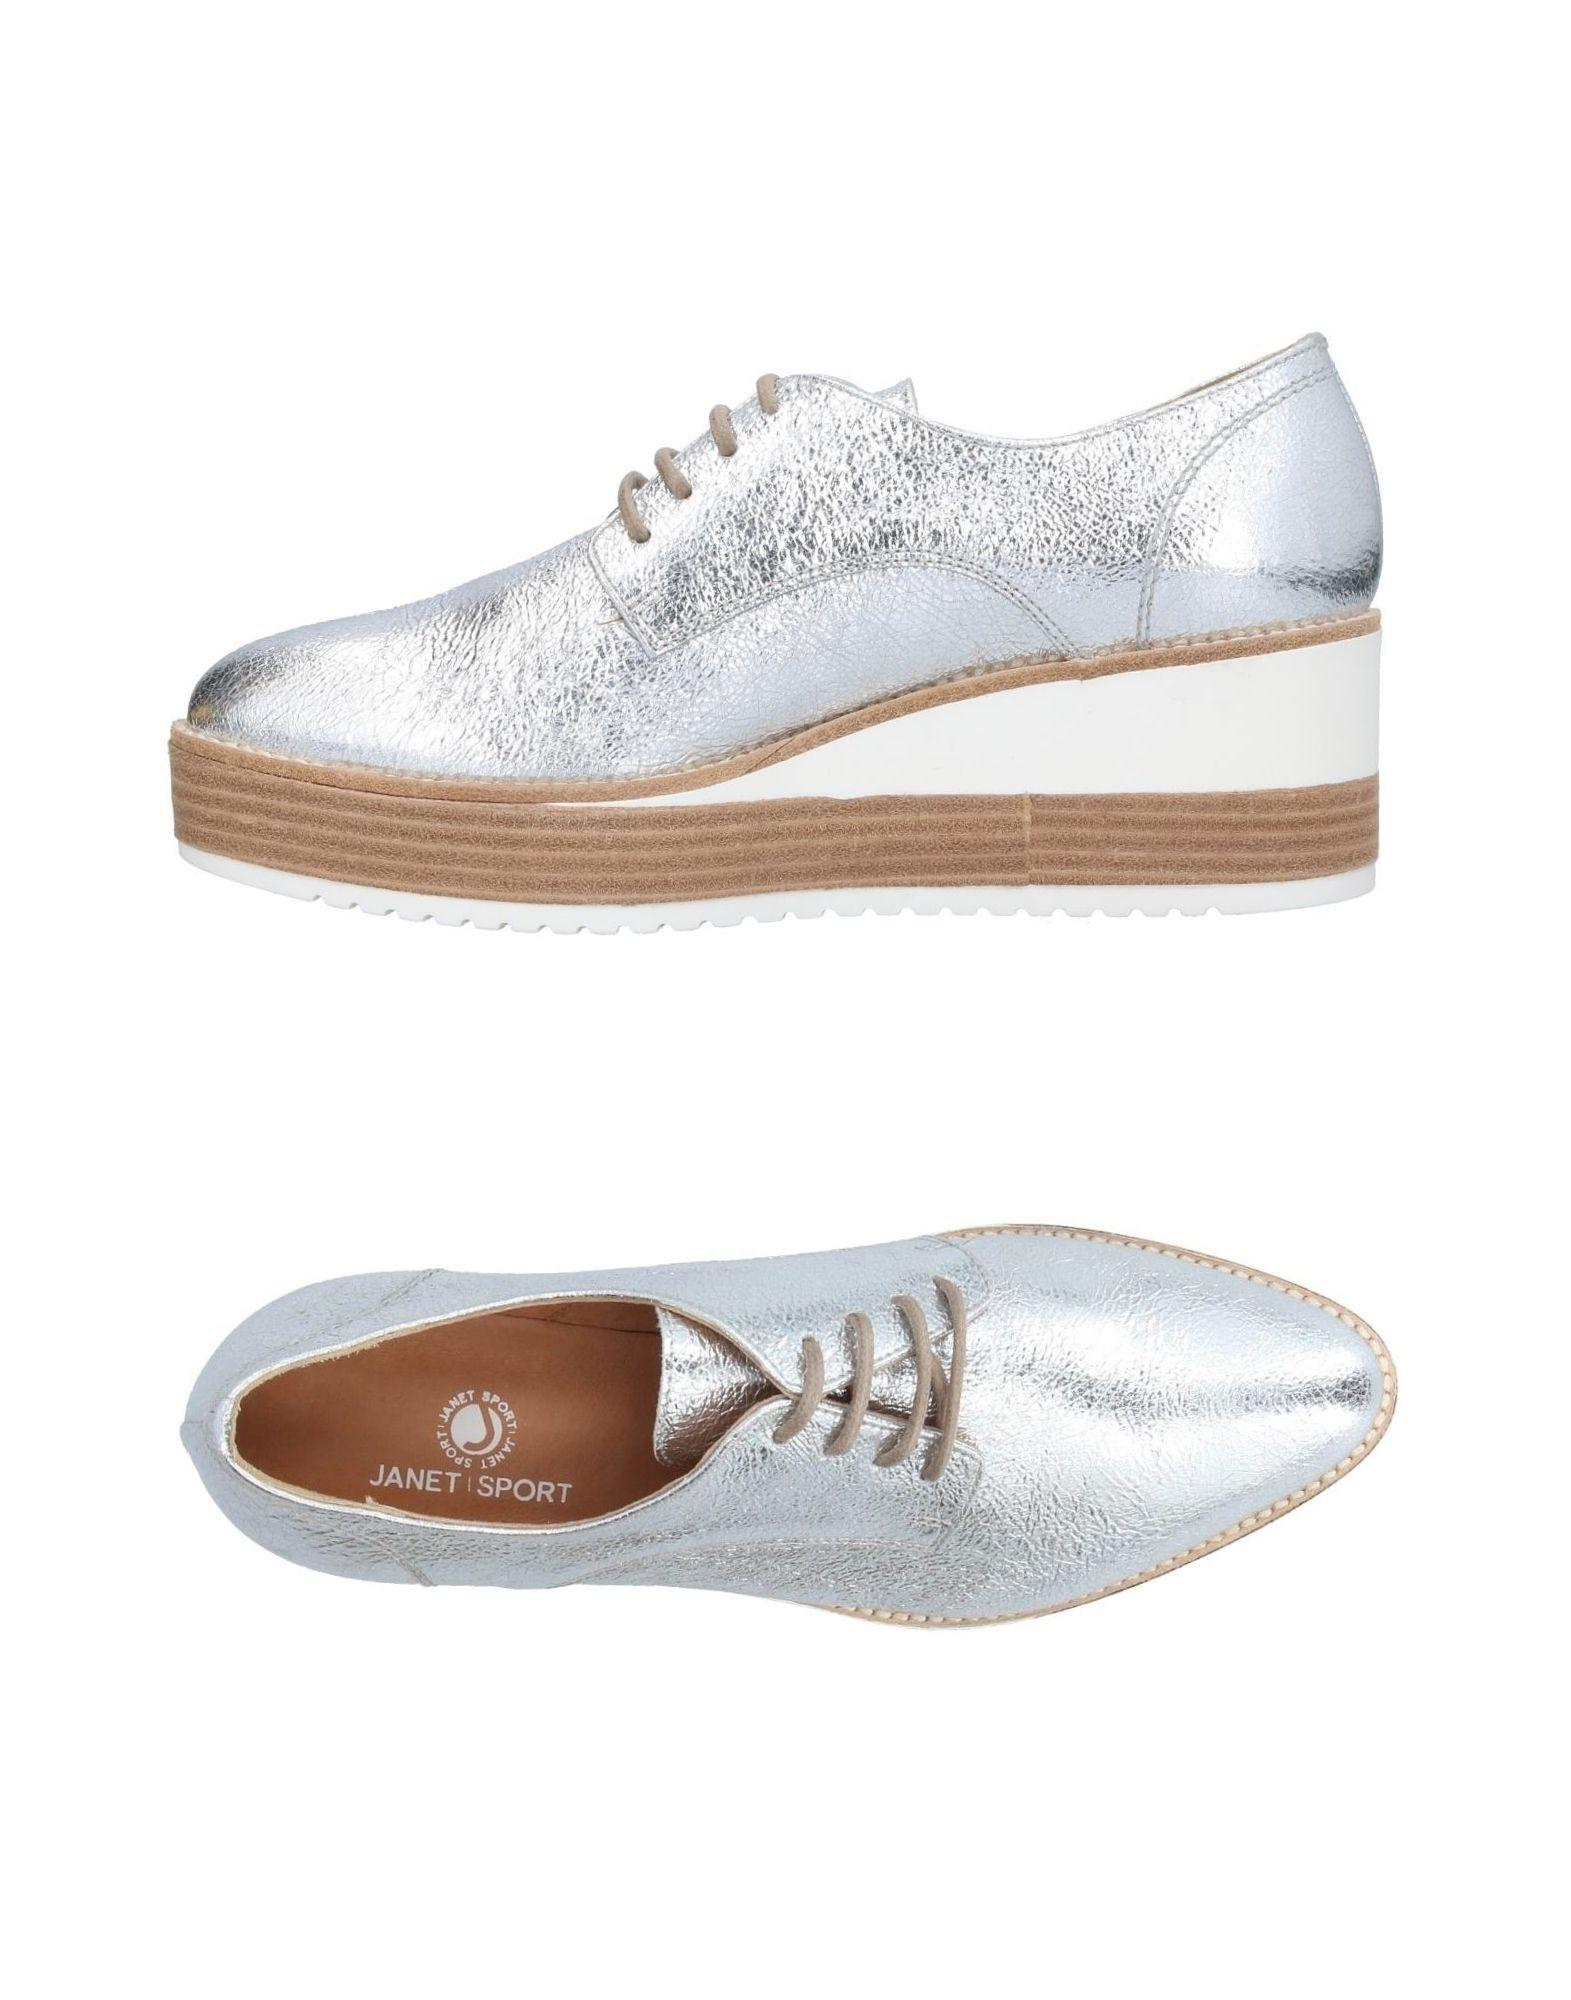 FOOTWEAR - Lace-up shoes Janet Sport rEvQyNrP0G